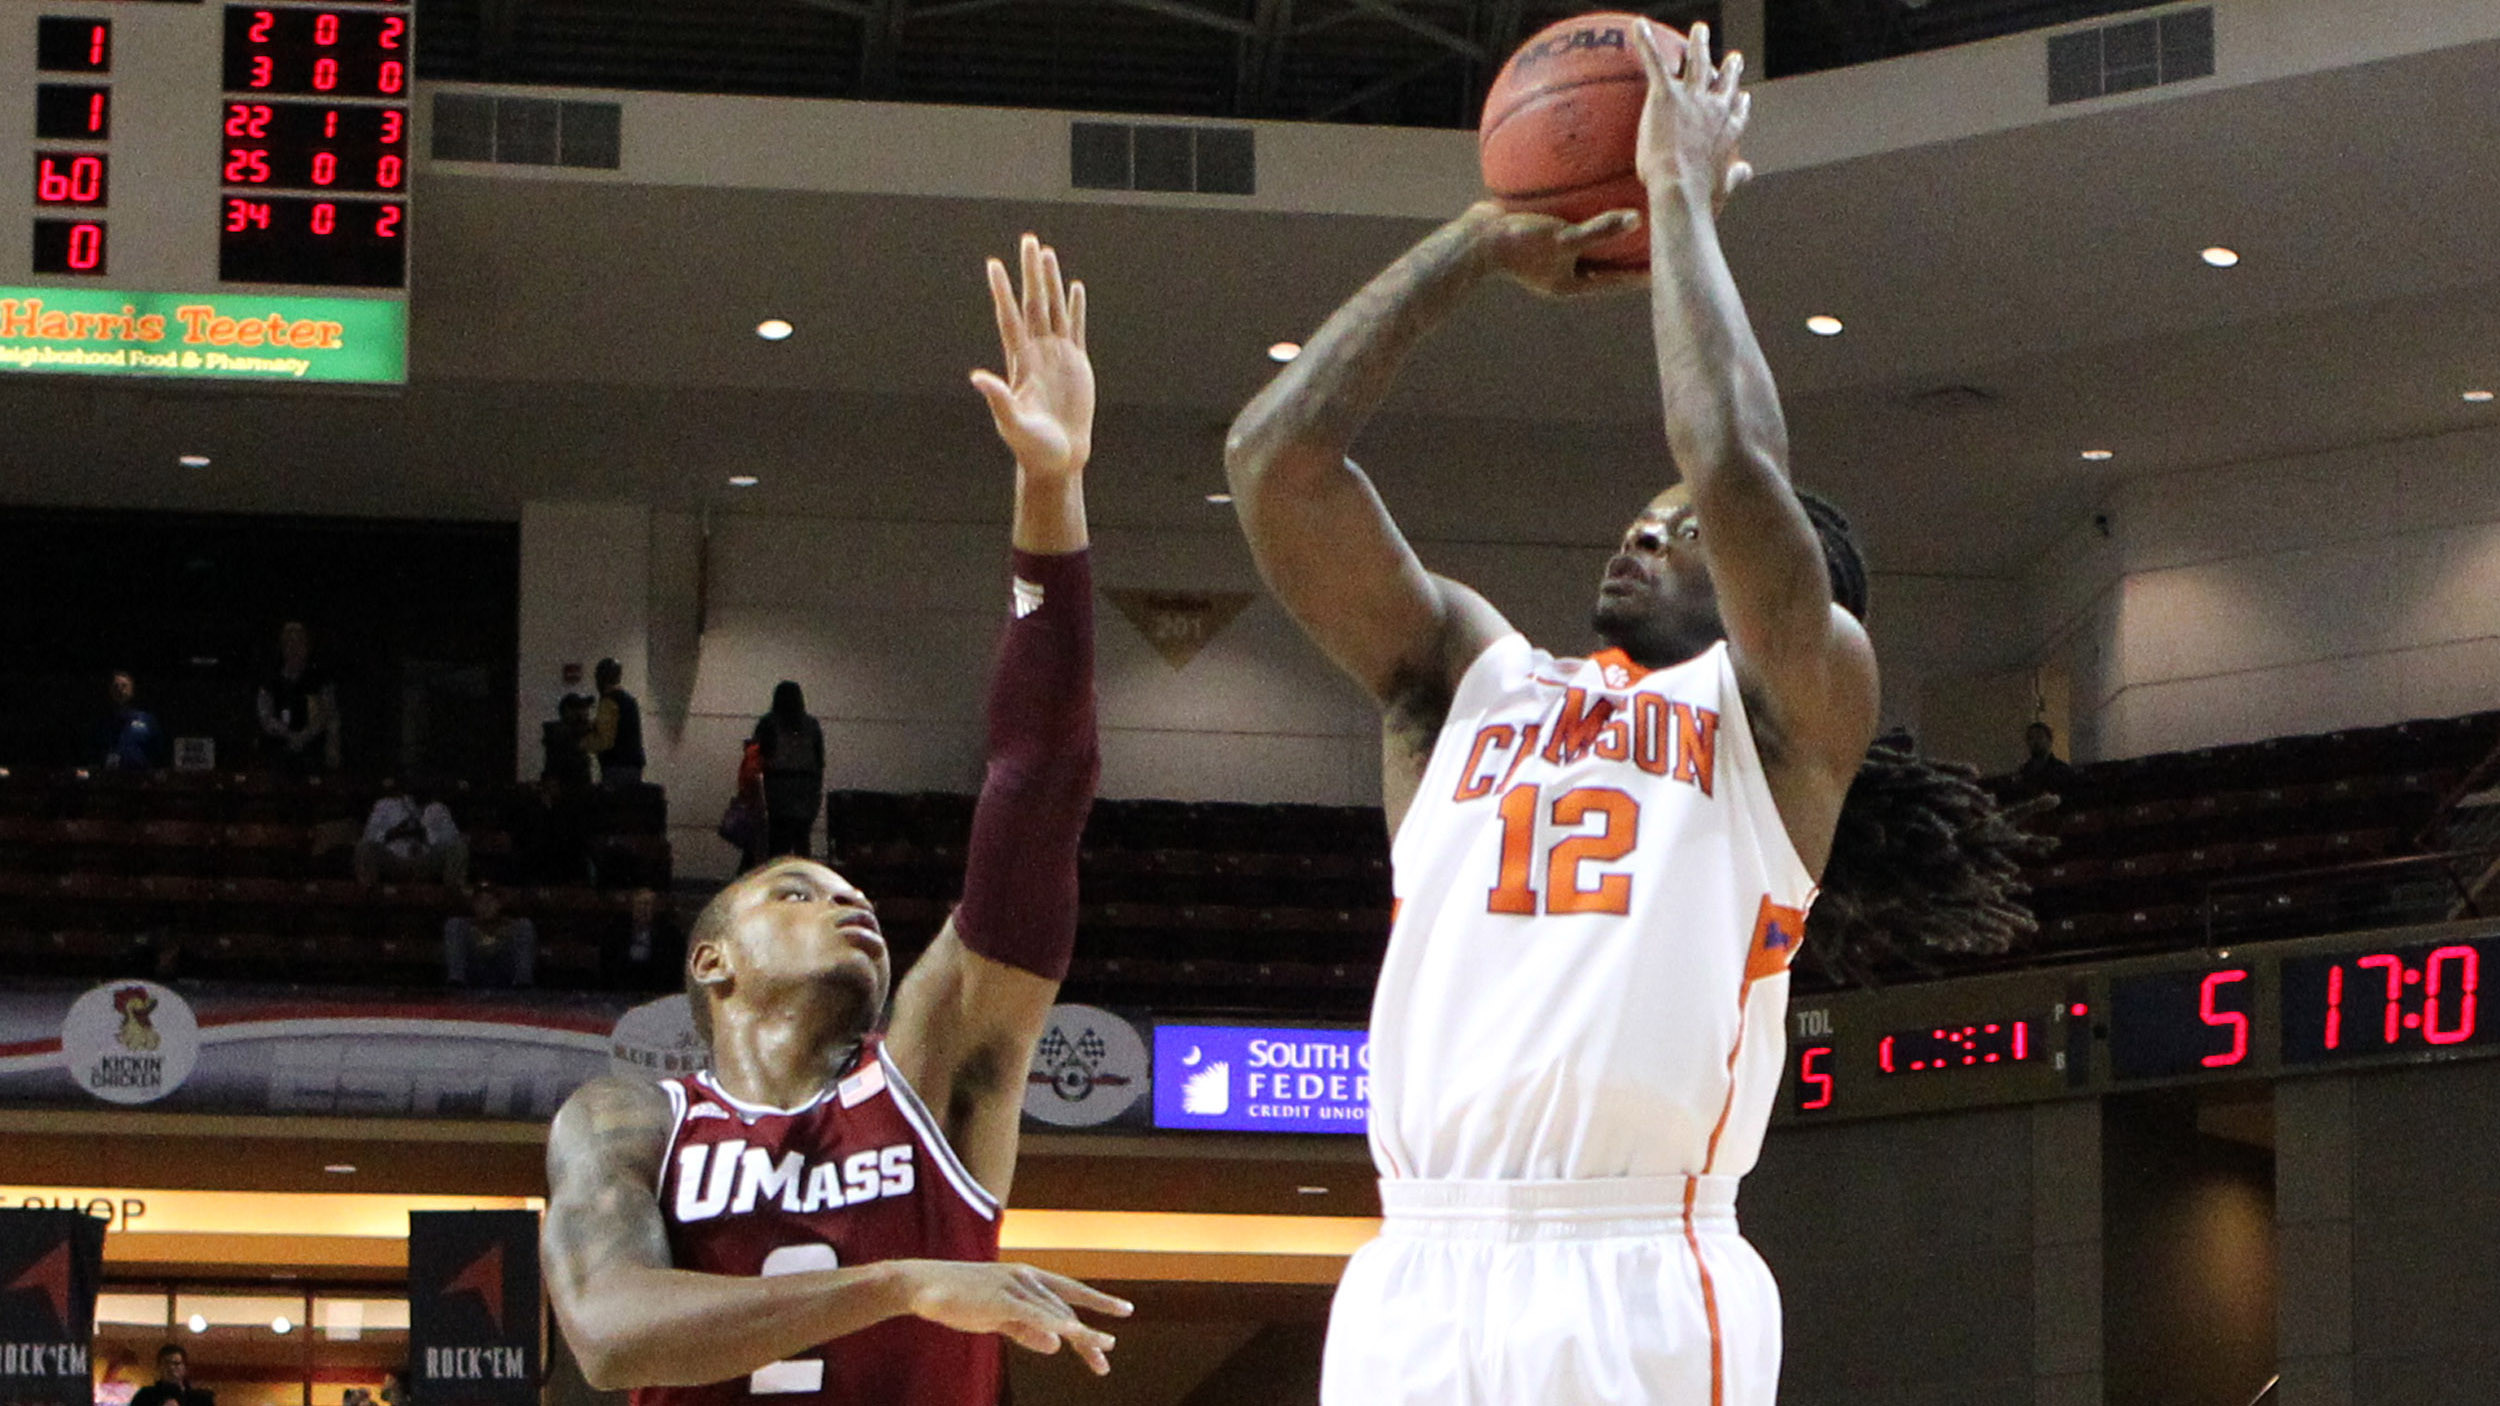 Clemson Falls to UMass in Charleston Classic Final, 62-56